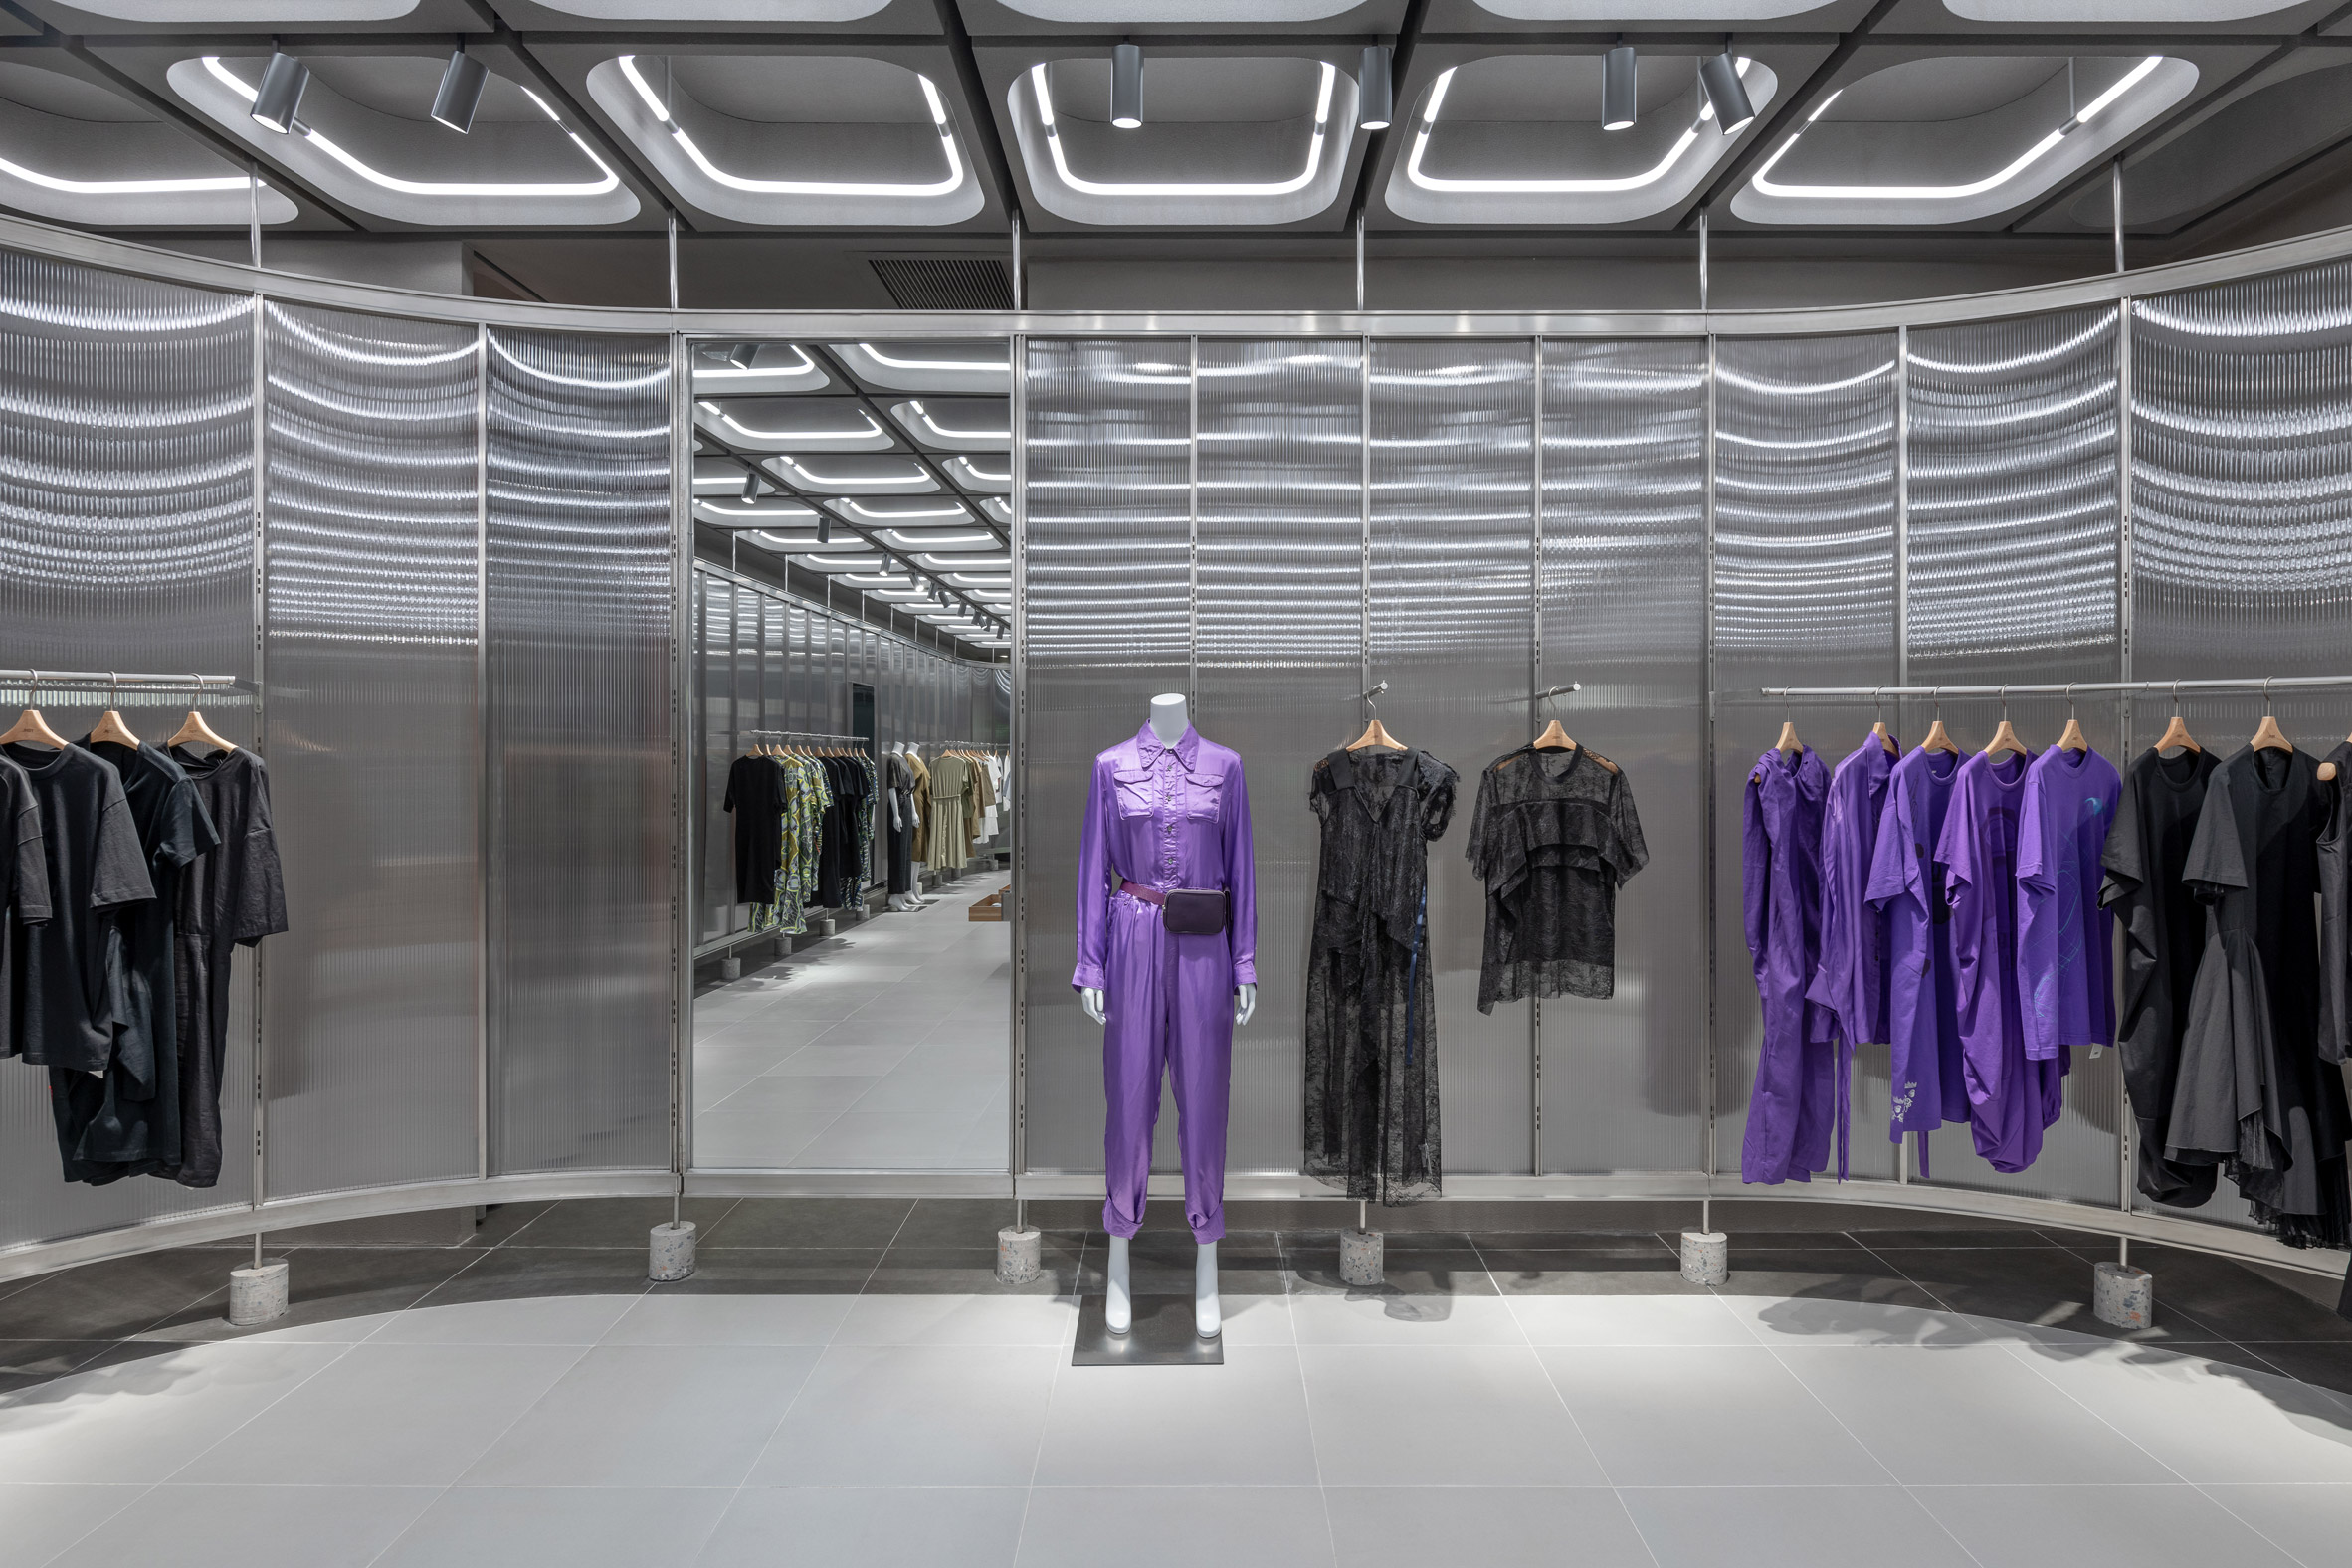 Interiors of JNBY store in Xiamen, China feature concrete, steel and glass